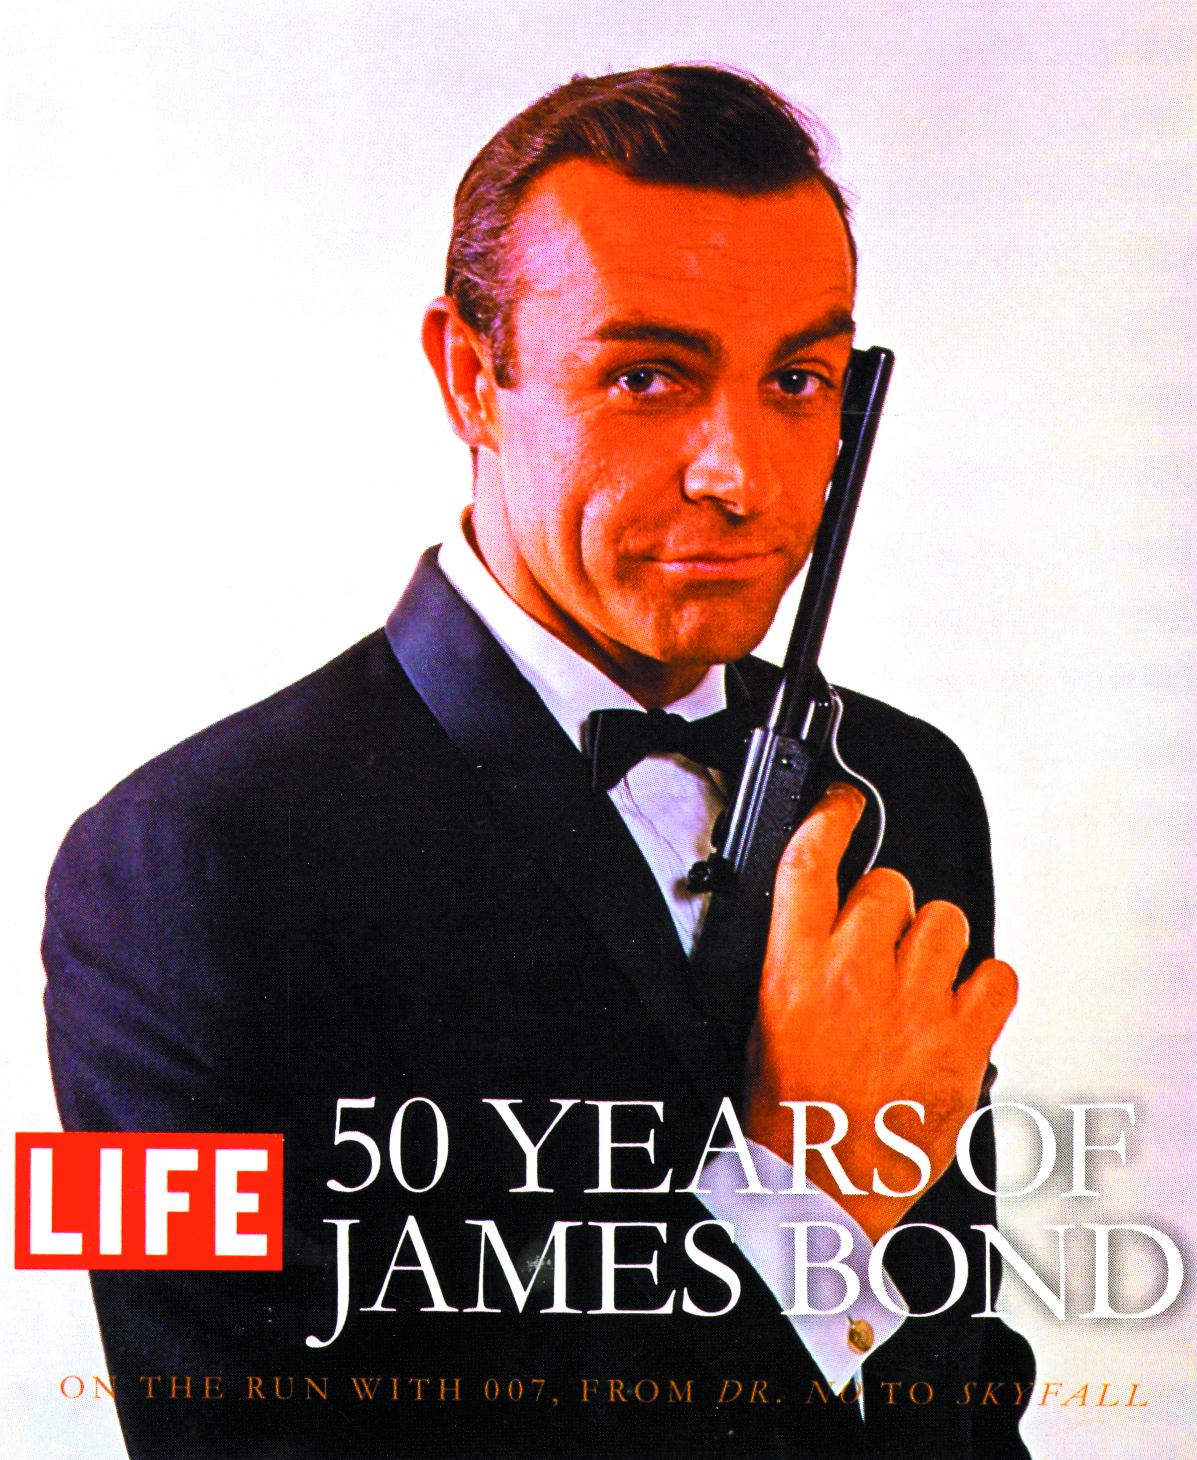 LIFE 50 YEARS OF JAMES BOND ON THE RUN WITH 007 HC